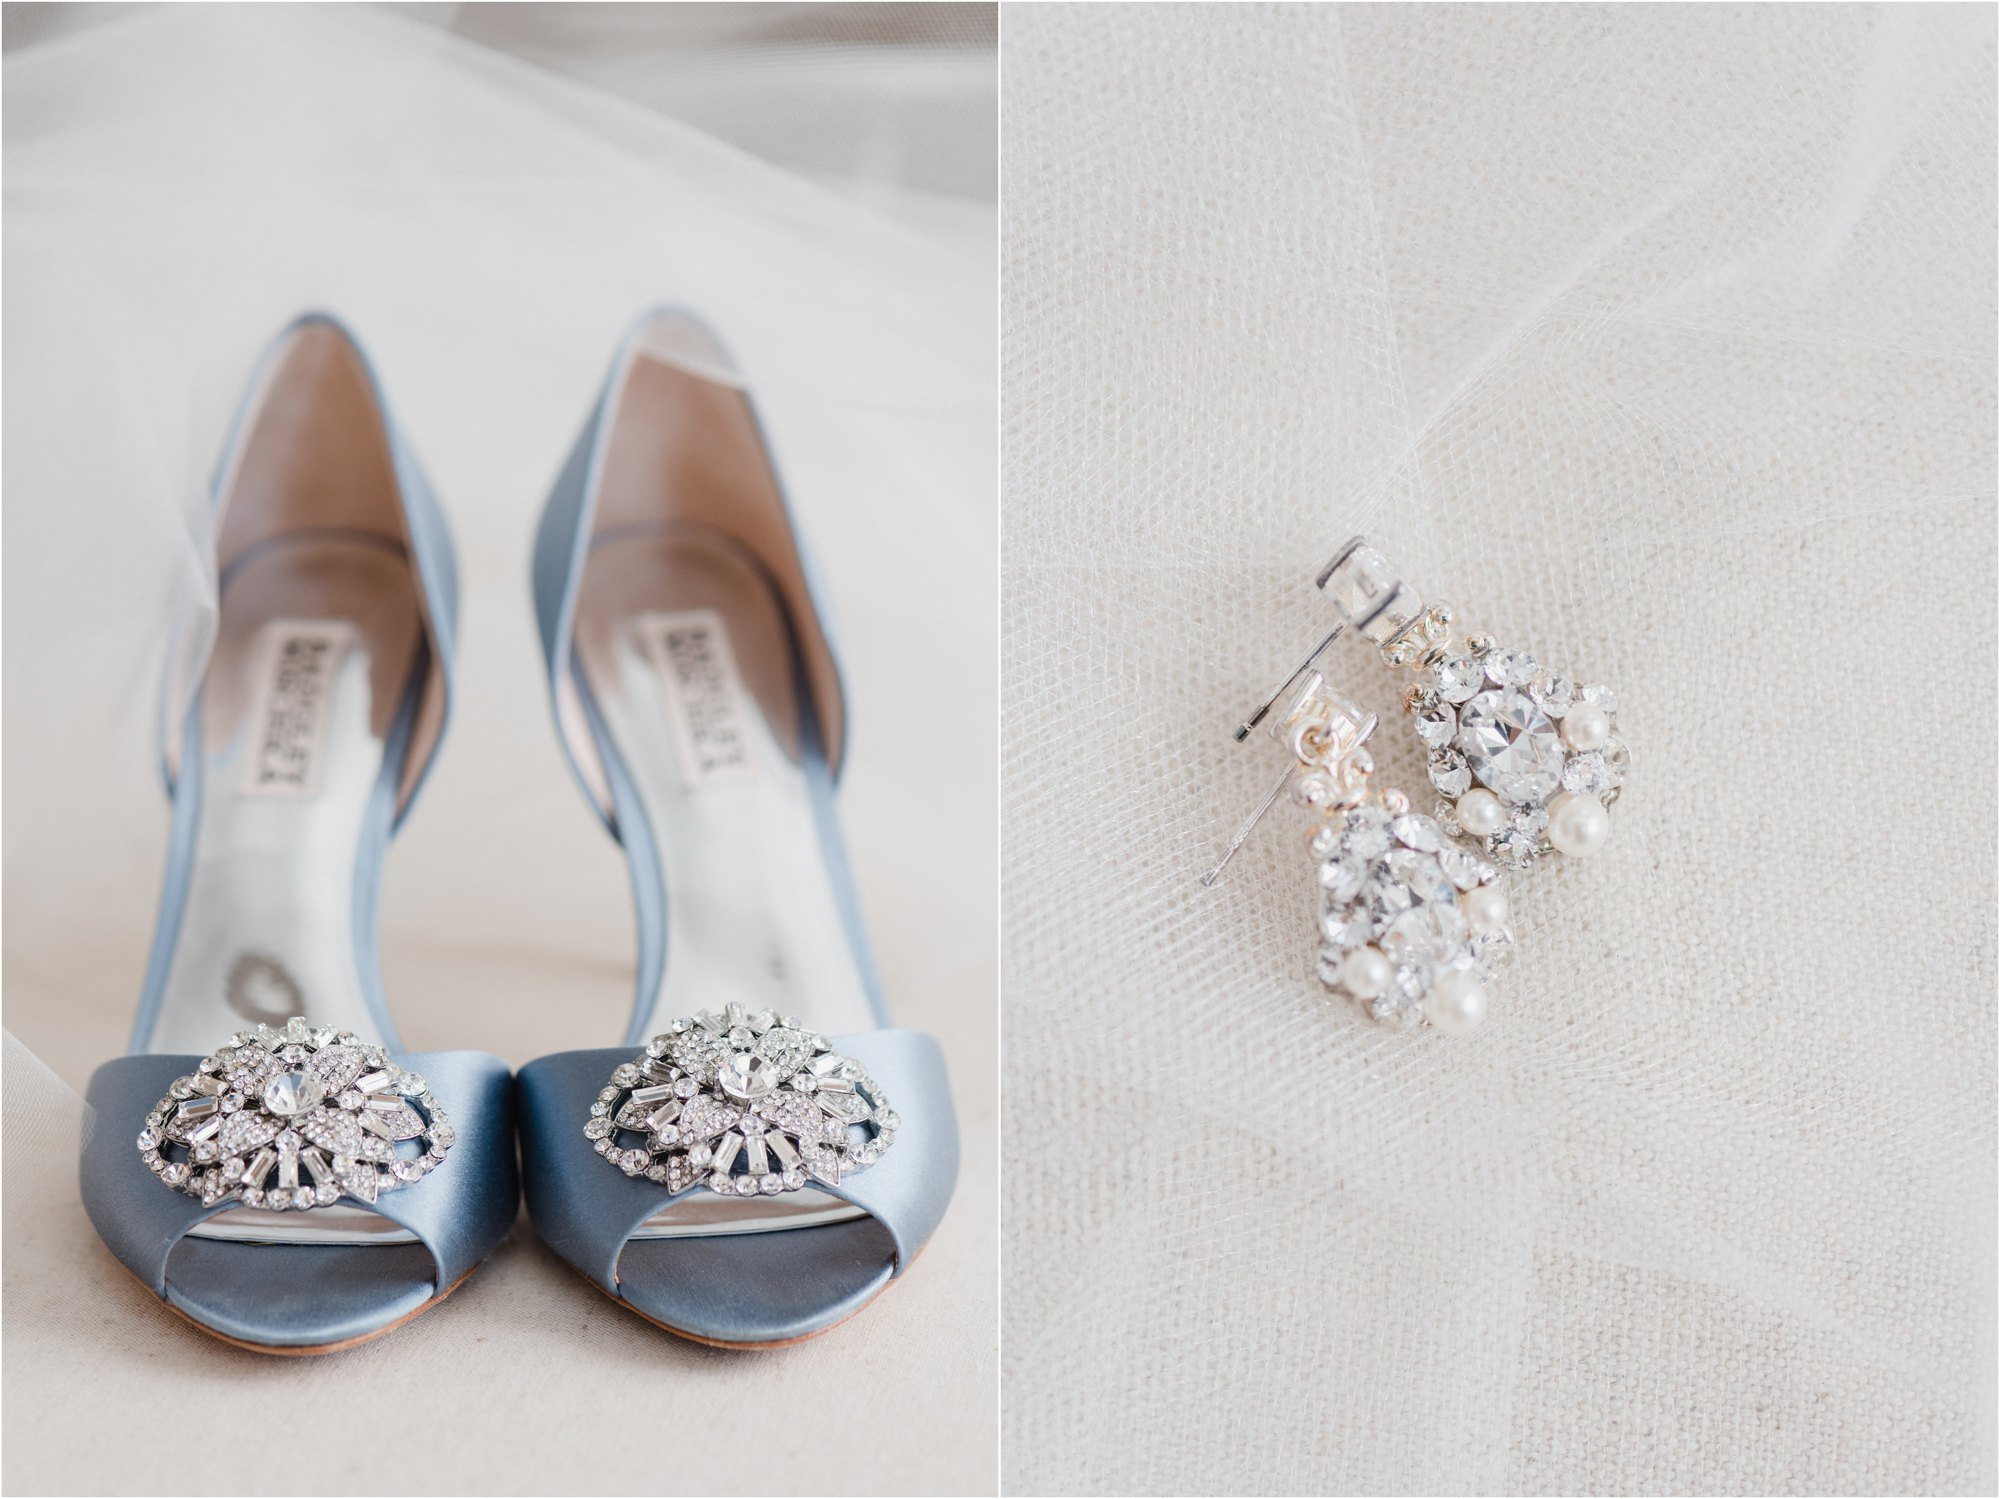 Brides shoes and earrings